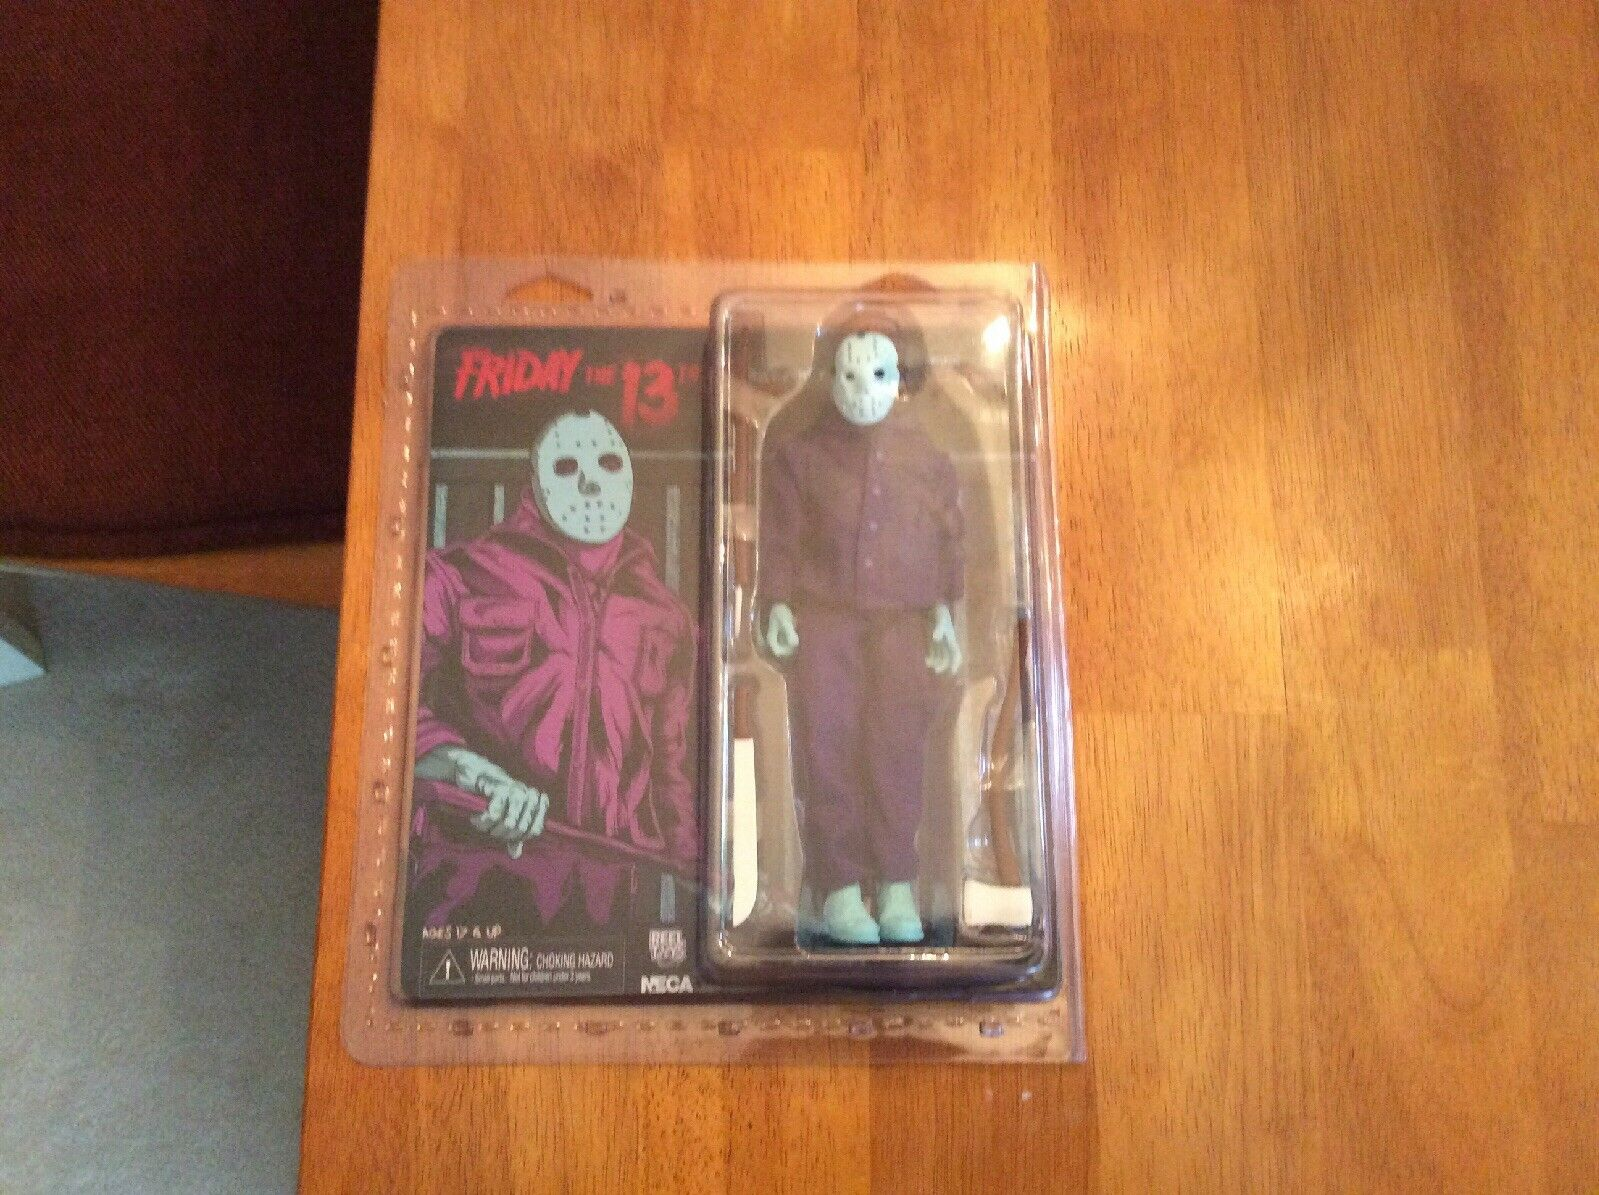 NECA Nes Jason Voorhees Videojuego TRU exclusivo Friday the 13TH figura 8 Bits